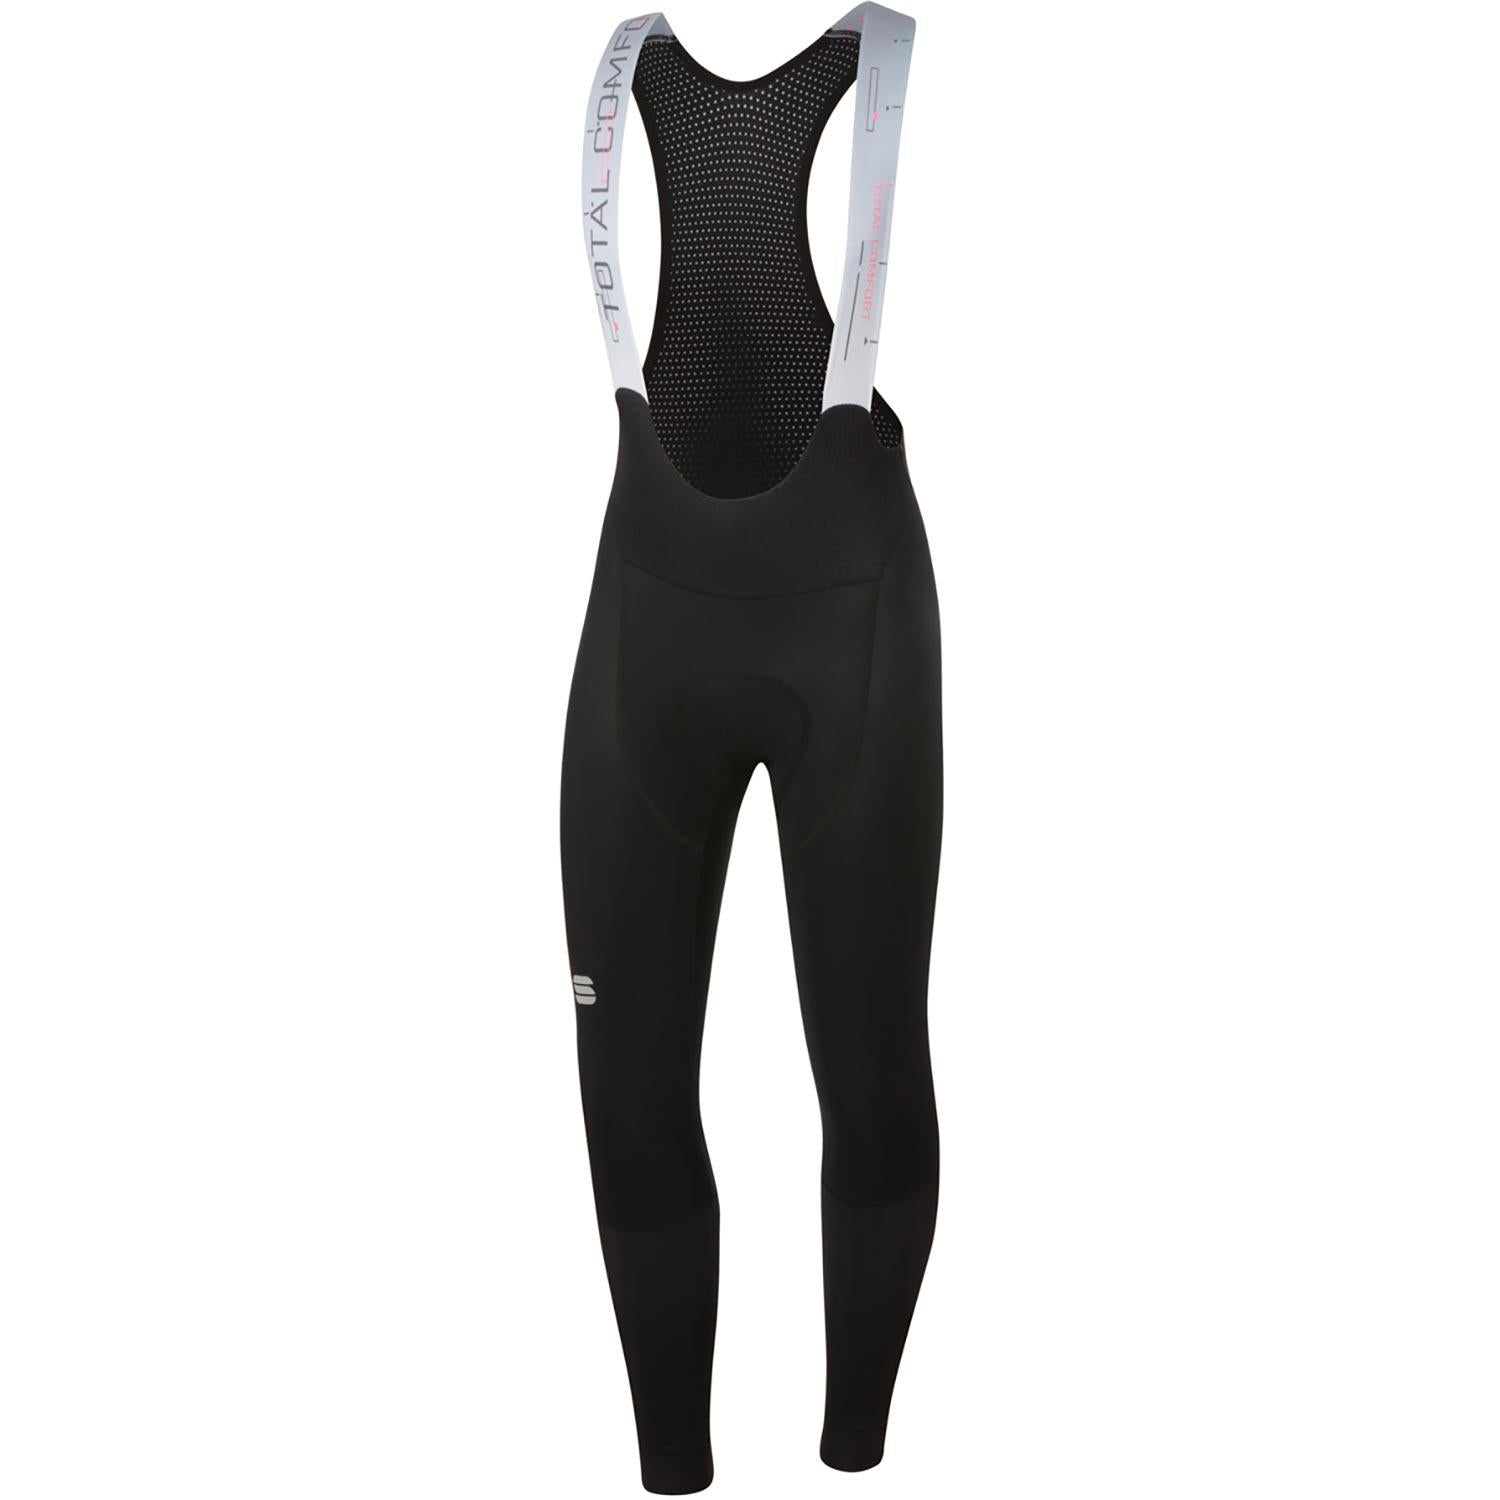 Sportful-Sportful Total Comfort Women's Bibtights-Black-XS-SF205350021-saddleback-elite-performance-cycling